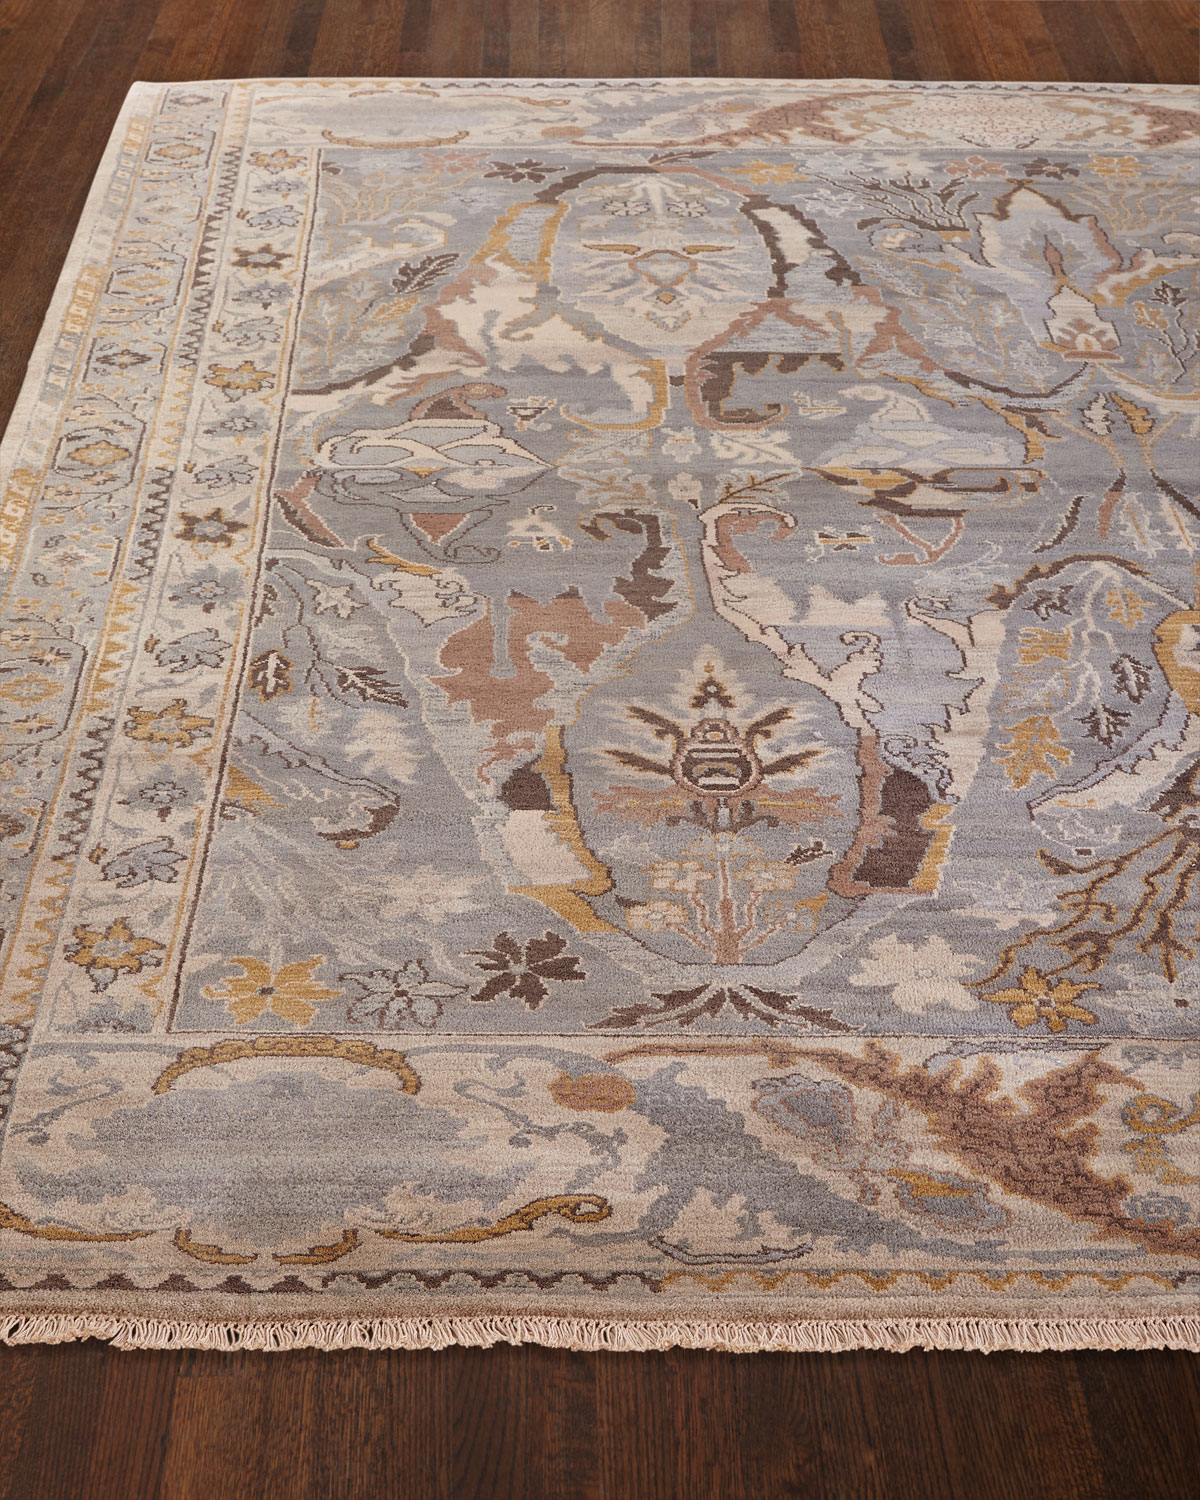 Exquisite Rugs Amata Hand-Knotted Rug, 6' x 9'